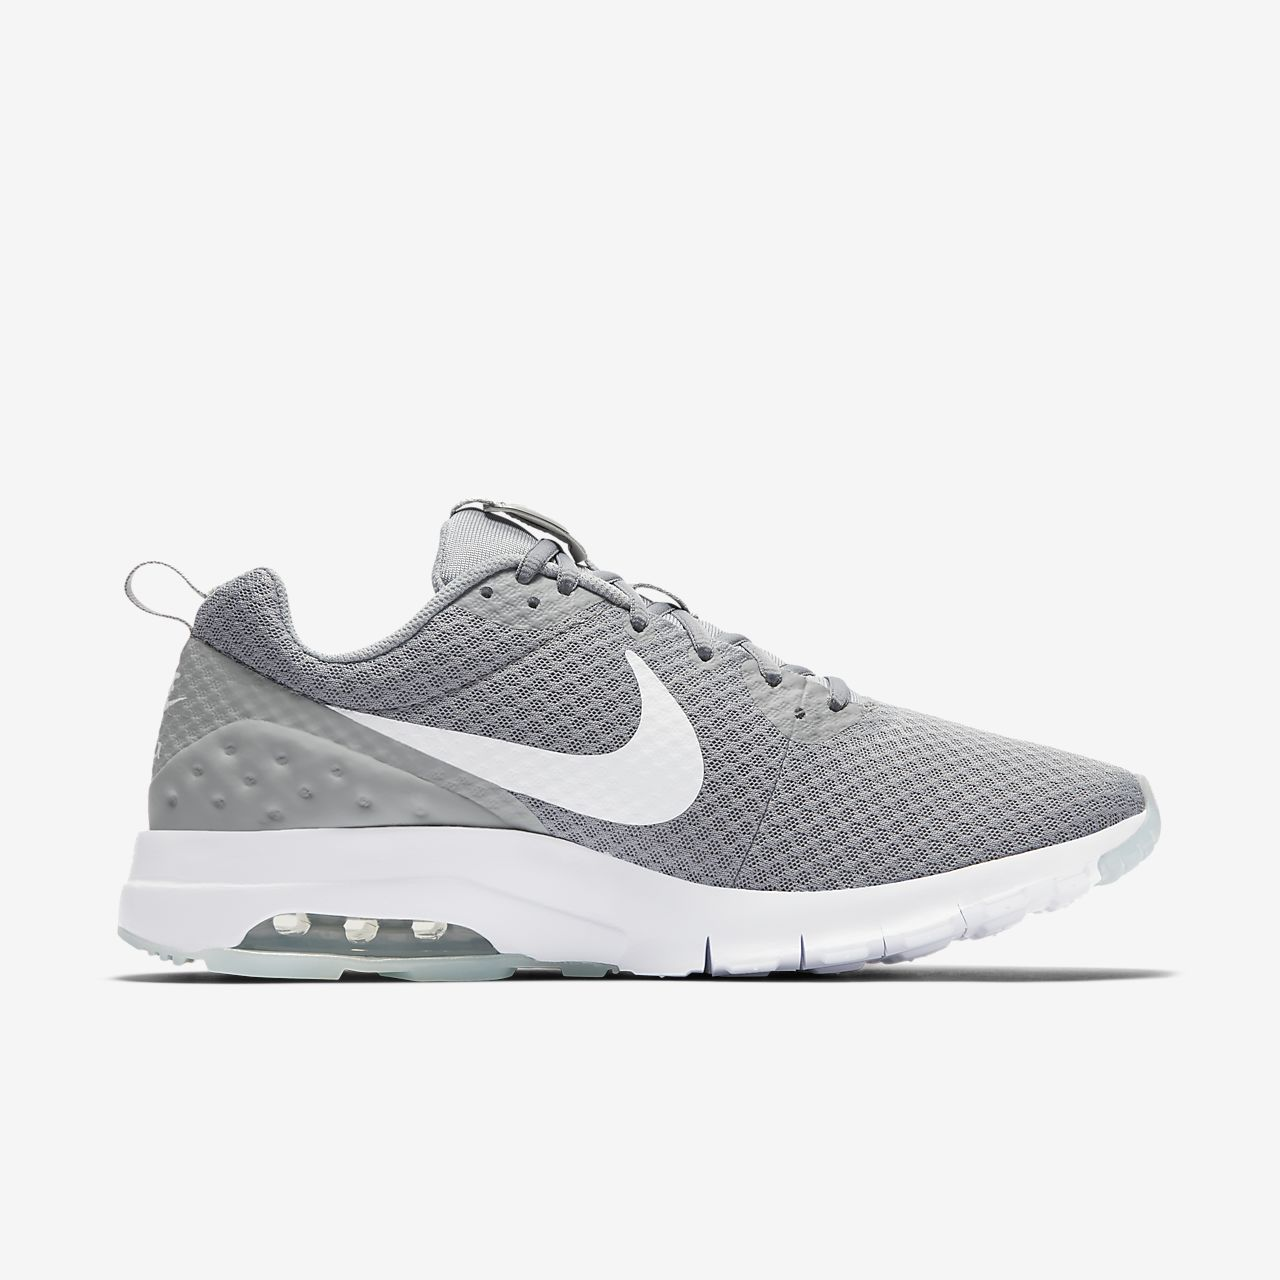 new product 28738 1c7d3 ... Chaussure Nike Air Max Motion Low pour Homme